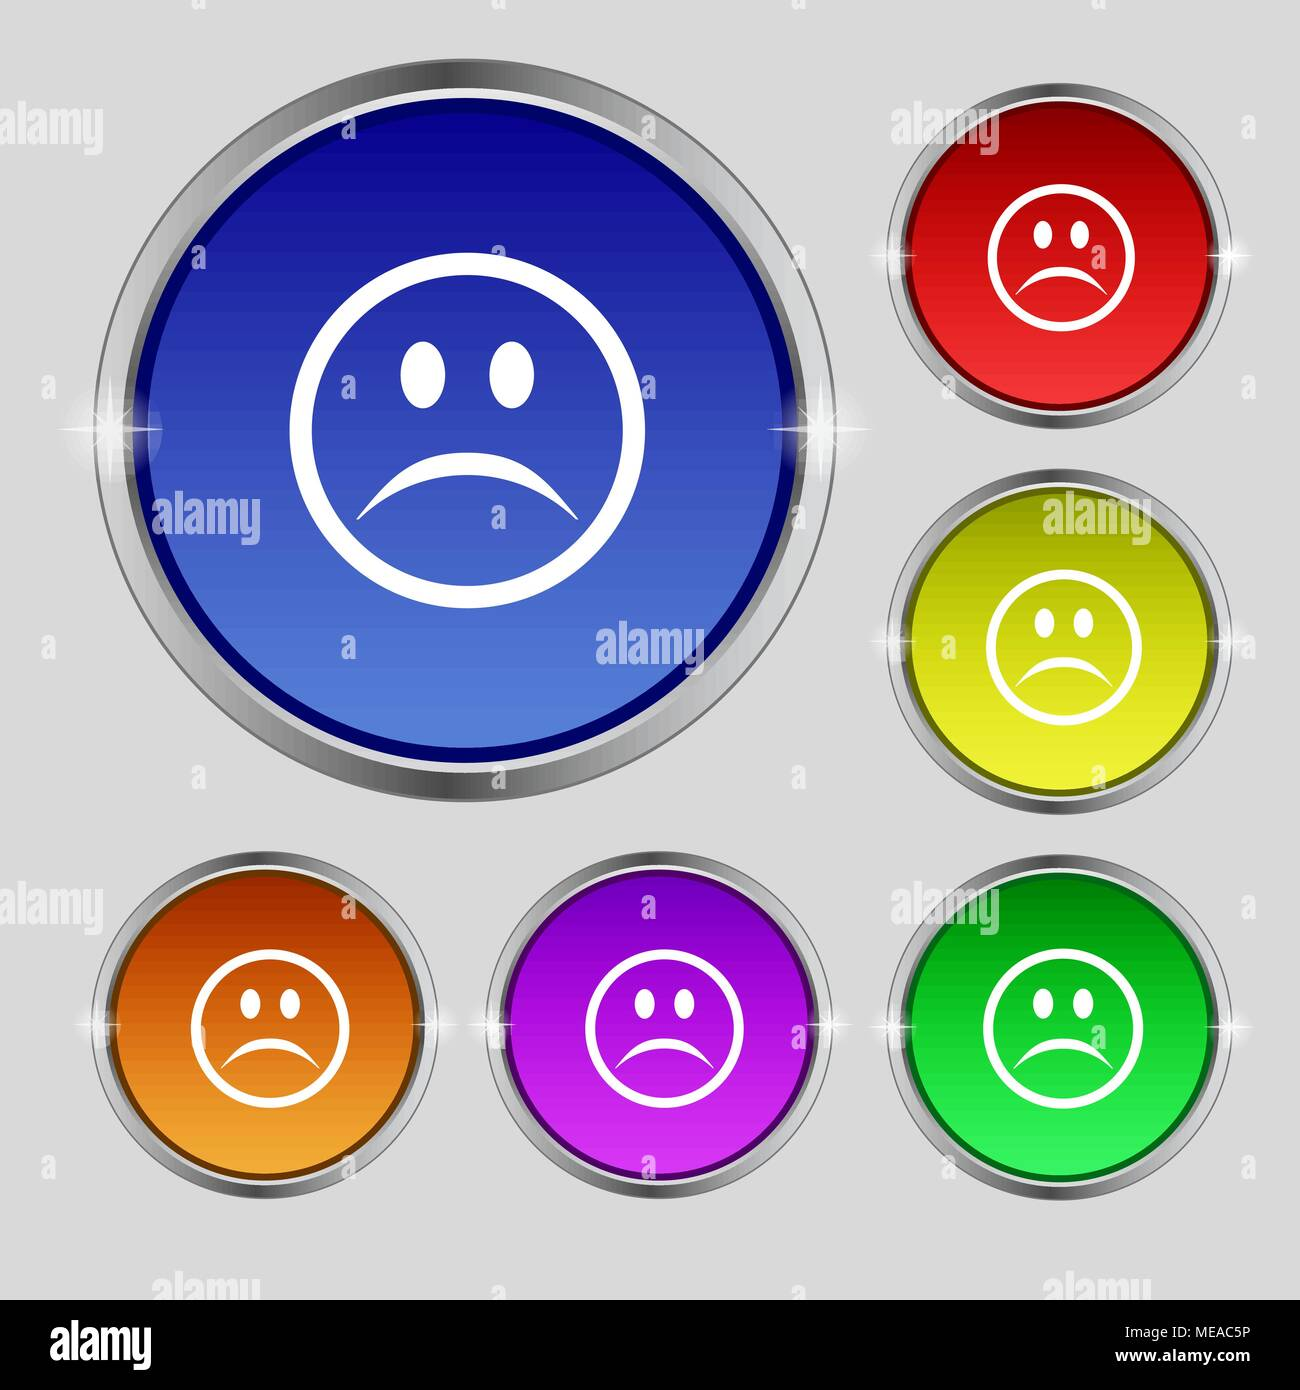 Sad face, Sadness depression icon sign. Round symbol on bright colourful buttons. Vector illustration - Stock Vector